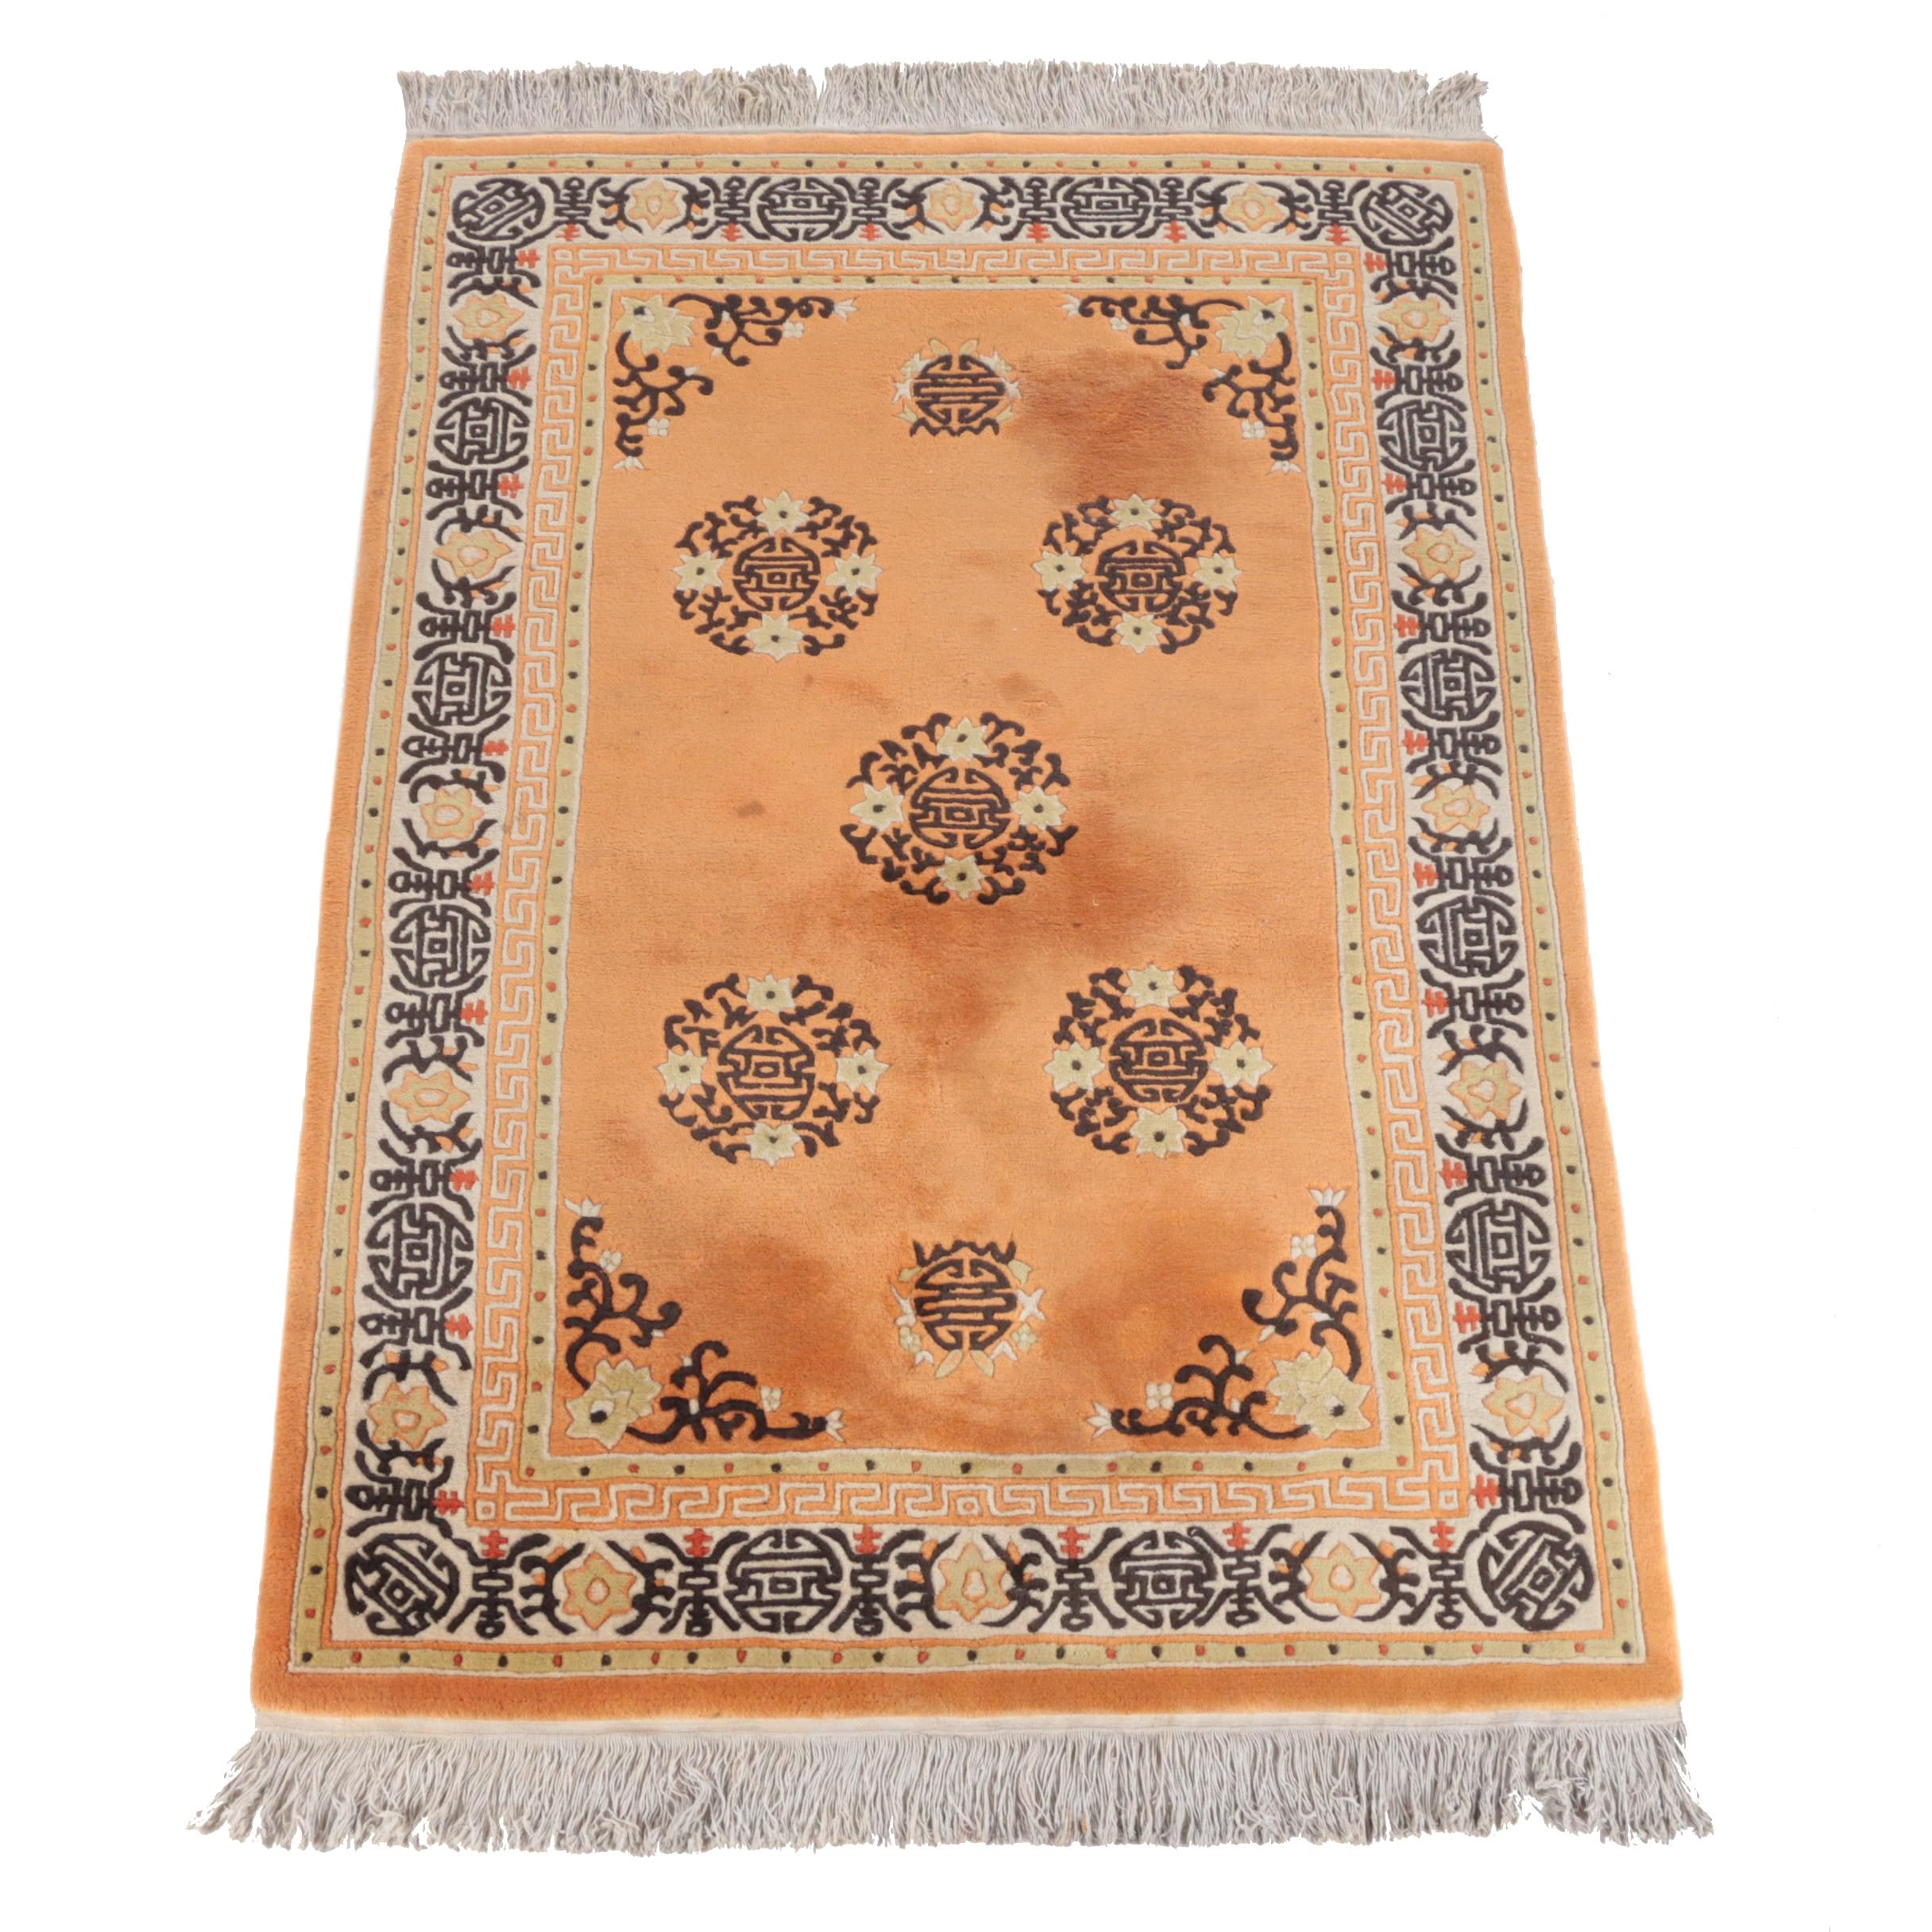 Hand-Knotted Chinese Carved Wool Area Rug with Longevity Symbols